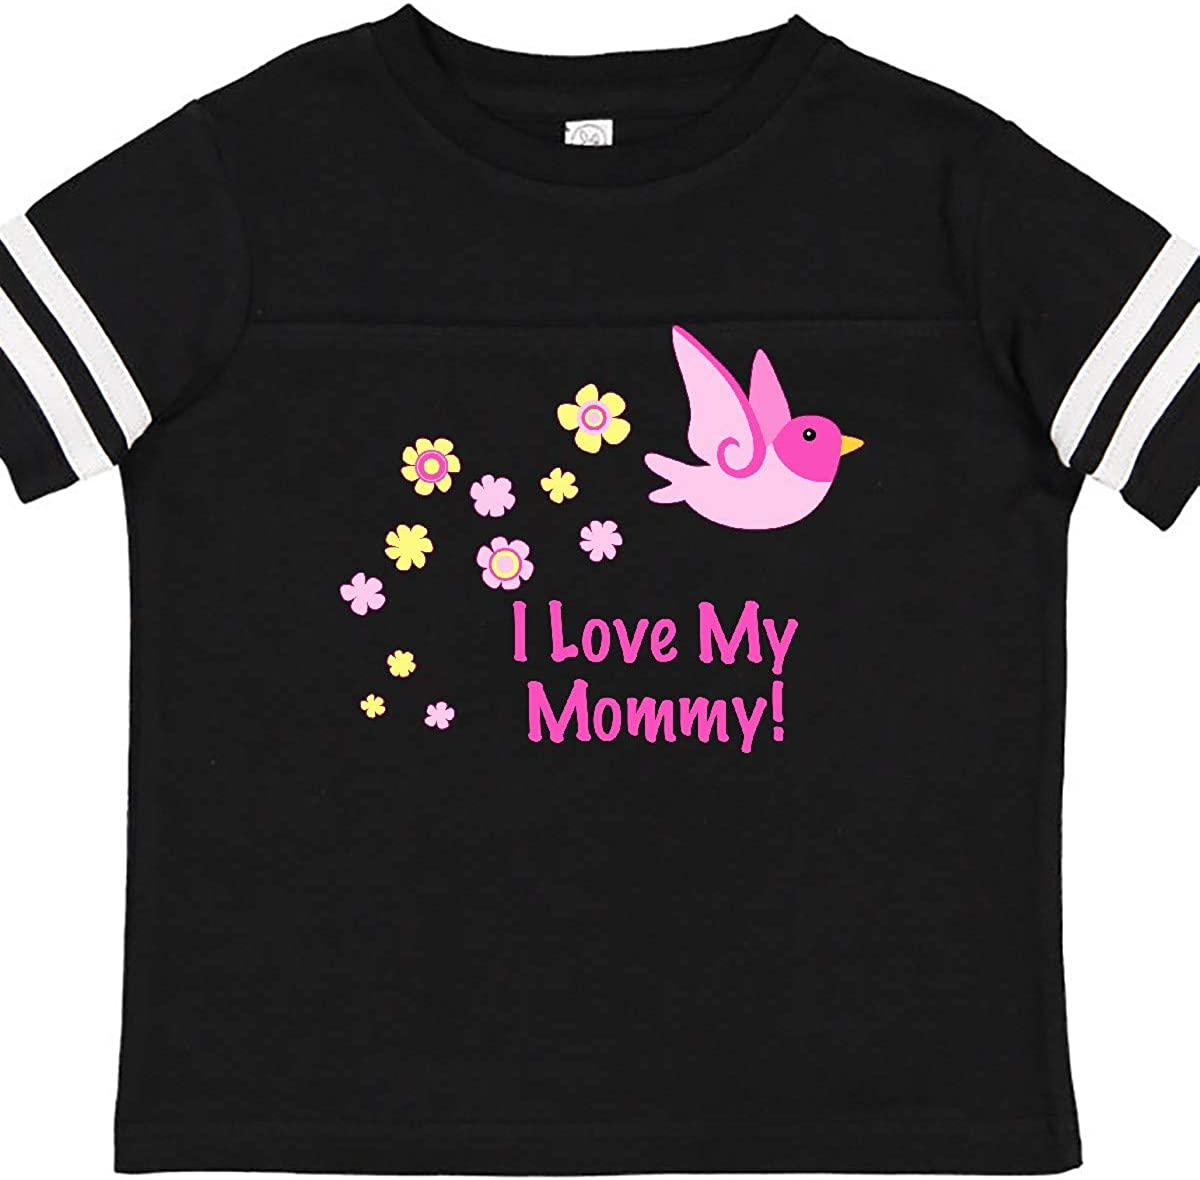 inktastic I Love My Mommy Toddler T-Shirt